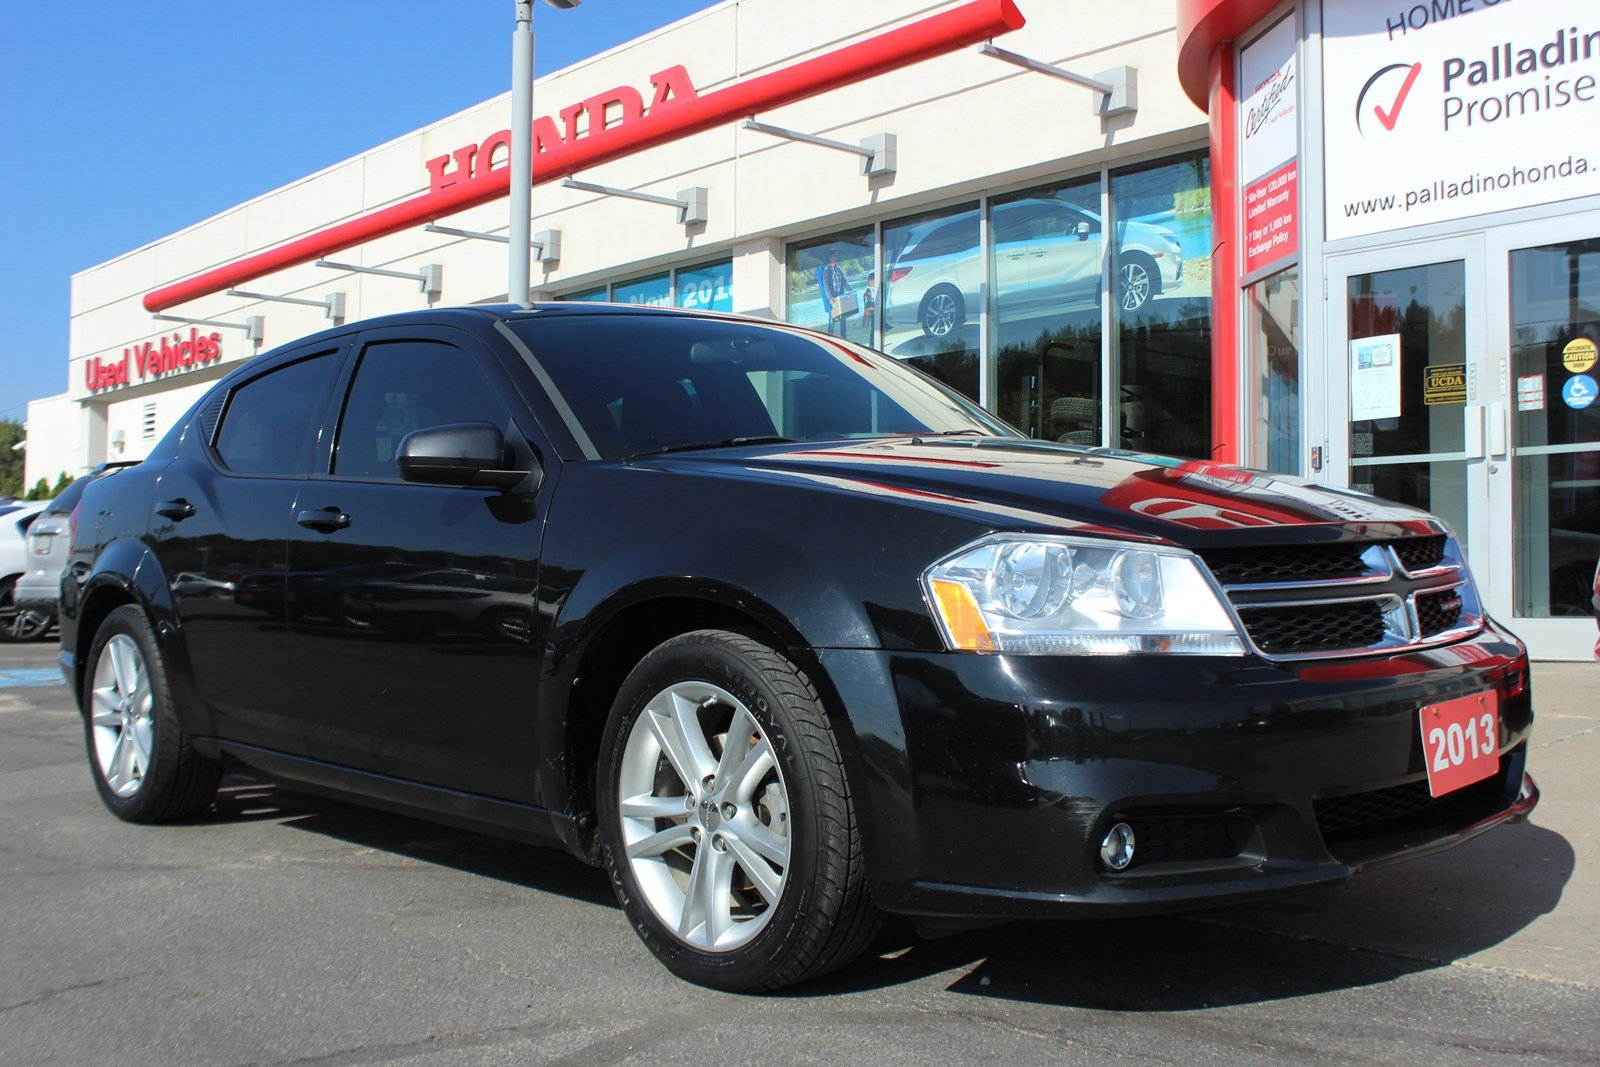 pre-owned 2013 dodge avenger sxt - ride in style 4dr car in